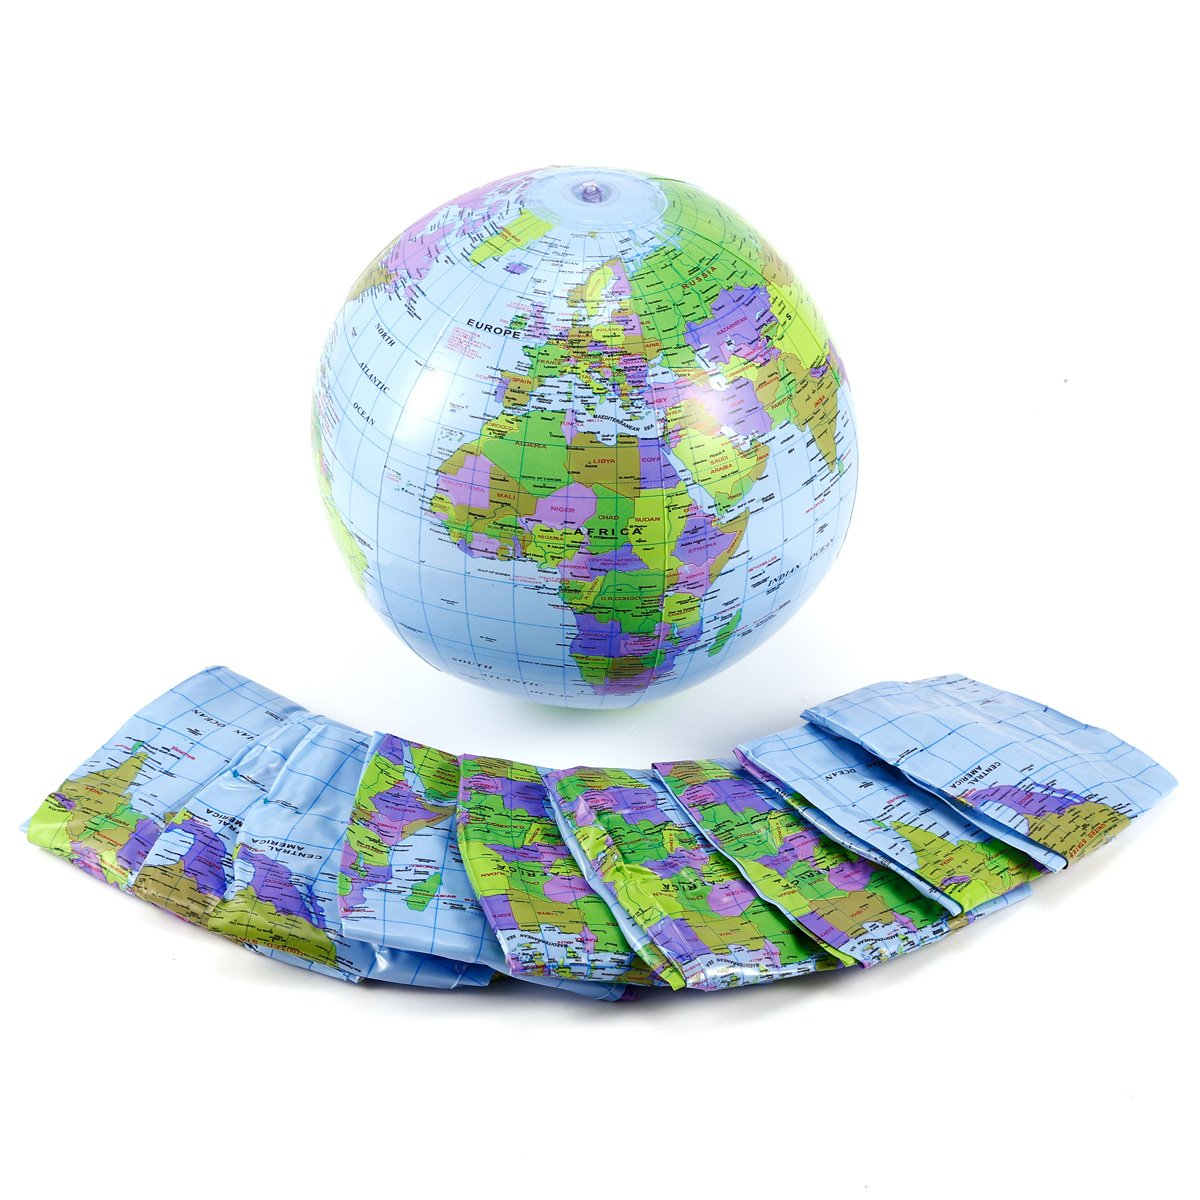 10x Inflatable World Earth Globe Atlas Map Beach Ball Geography Education Toy surepromise